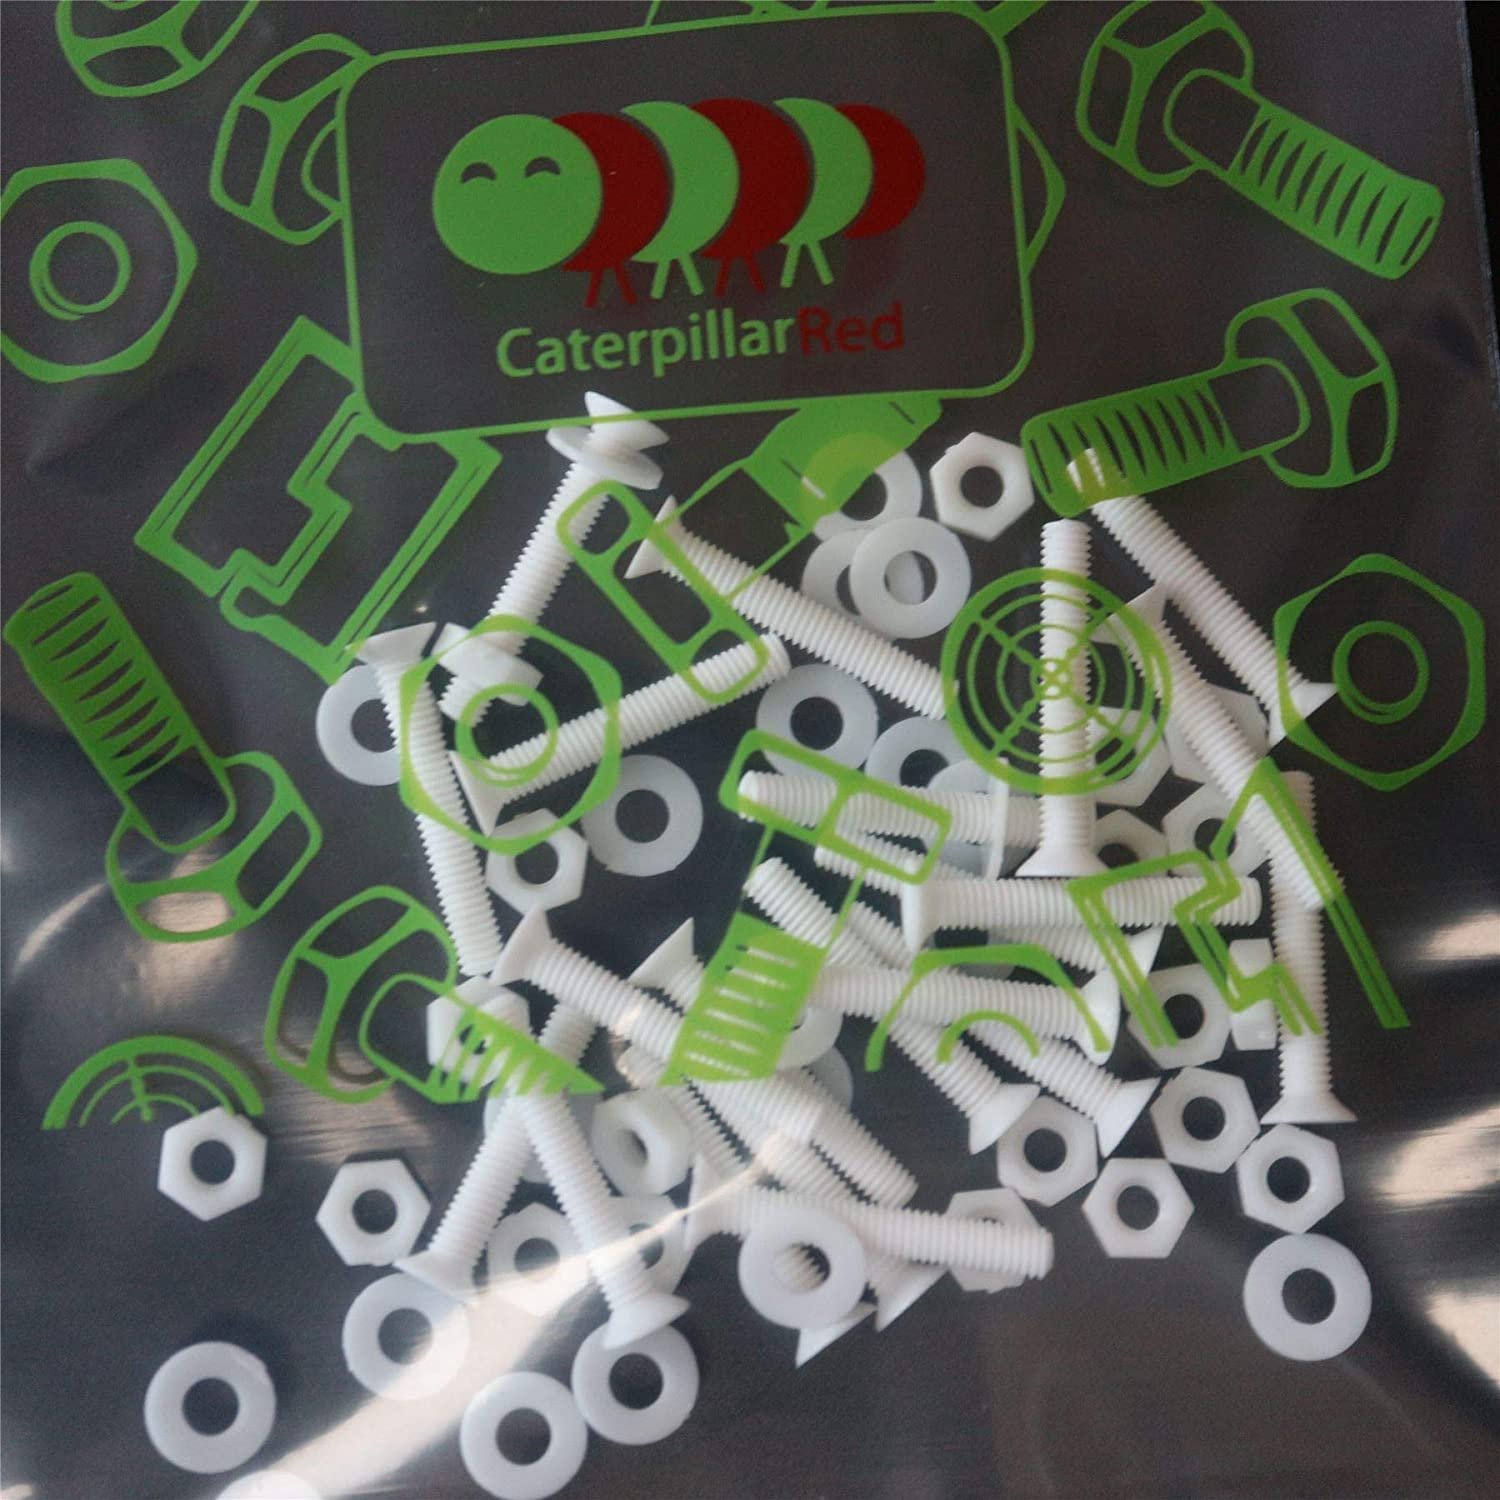 PP Anti-Corrosion M3 x 20mm Water Resistant Acrylic Washers 1//8 x 25//32 Chemical Resistant 20 x White Philips Pan Head Screws Polypropylene Plastic Nuts and Bolts